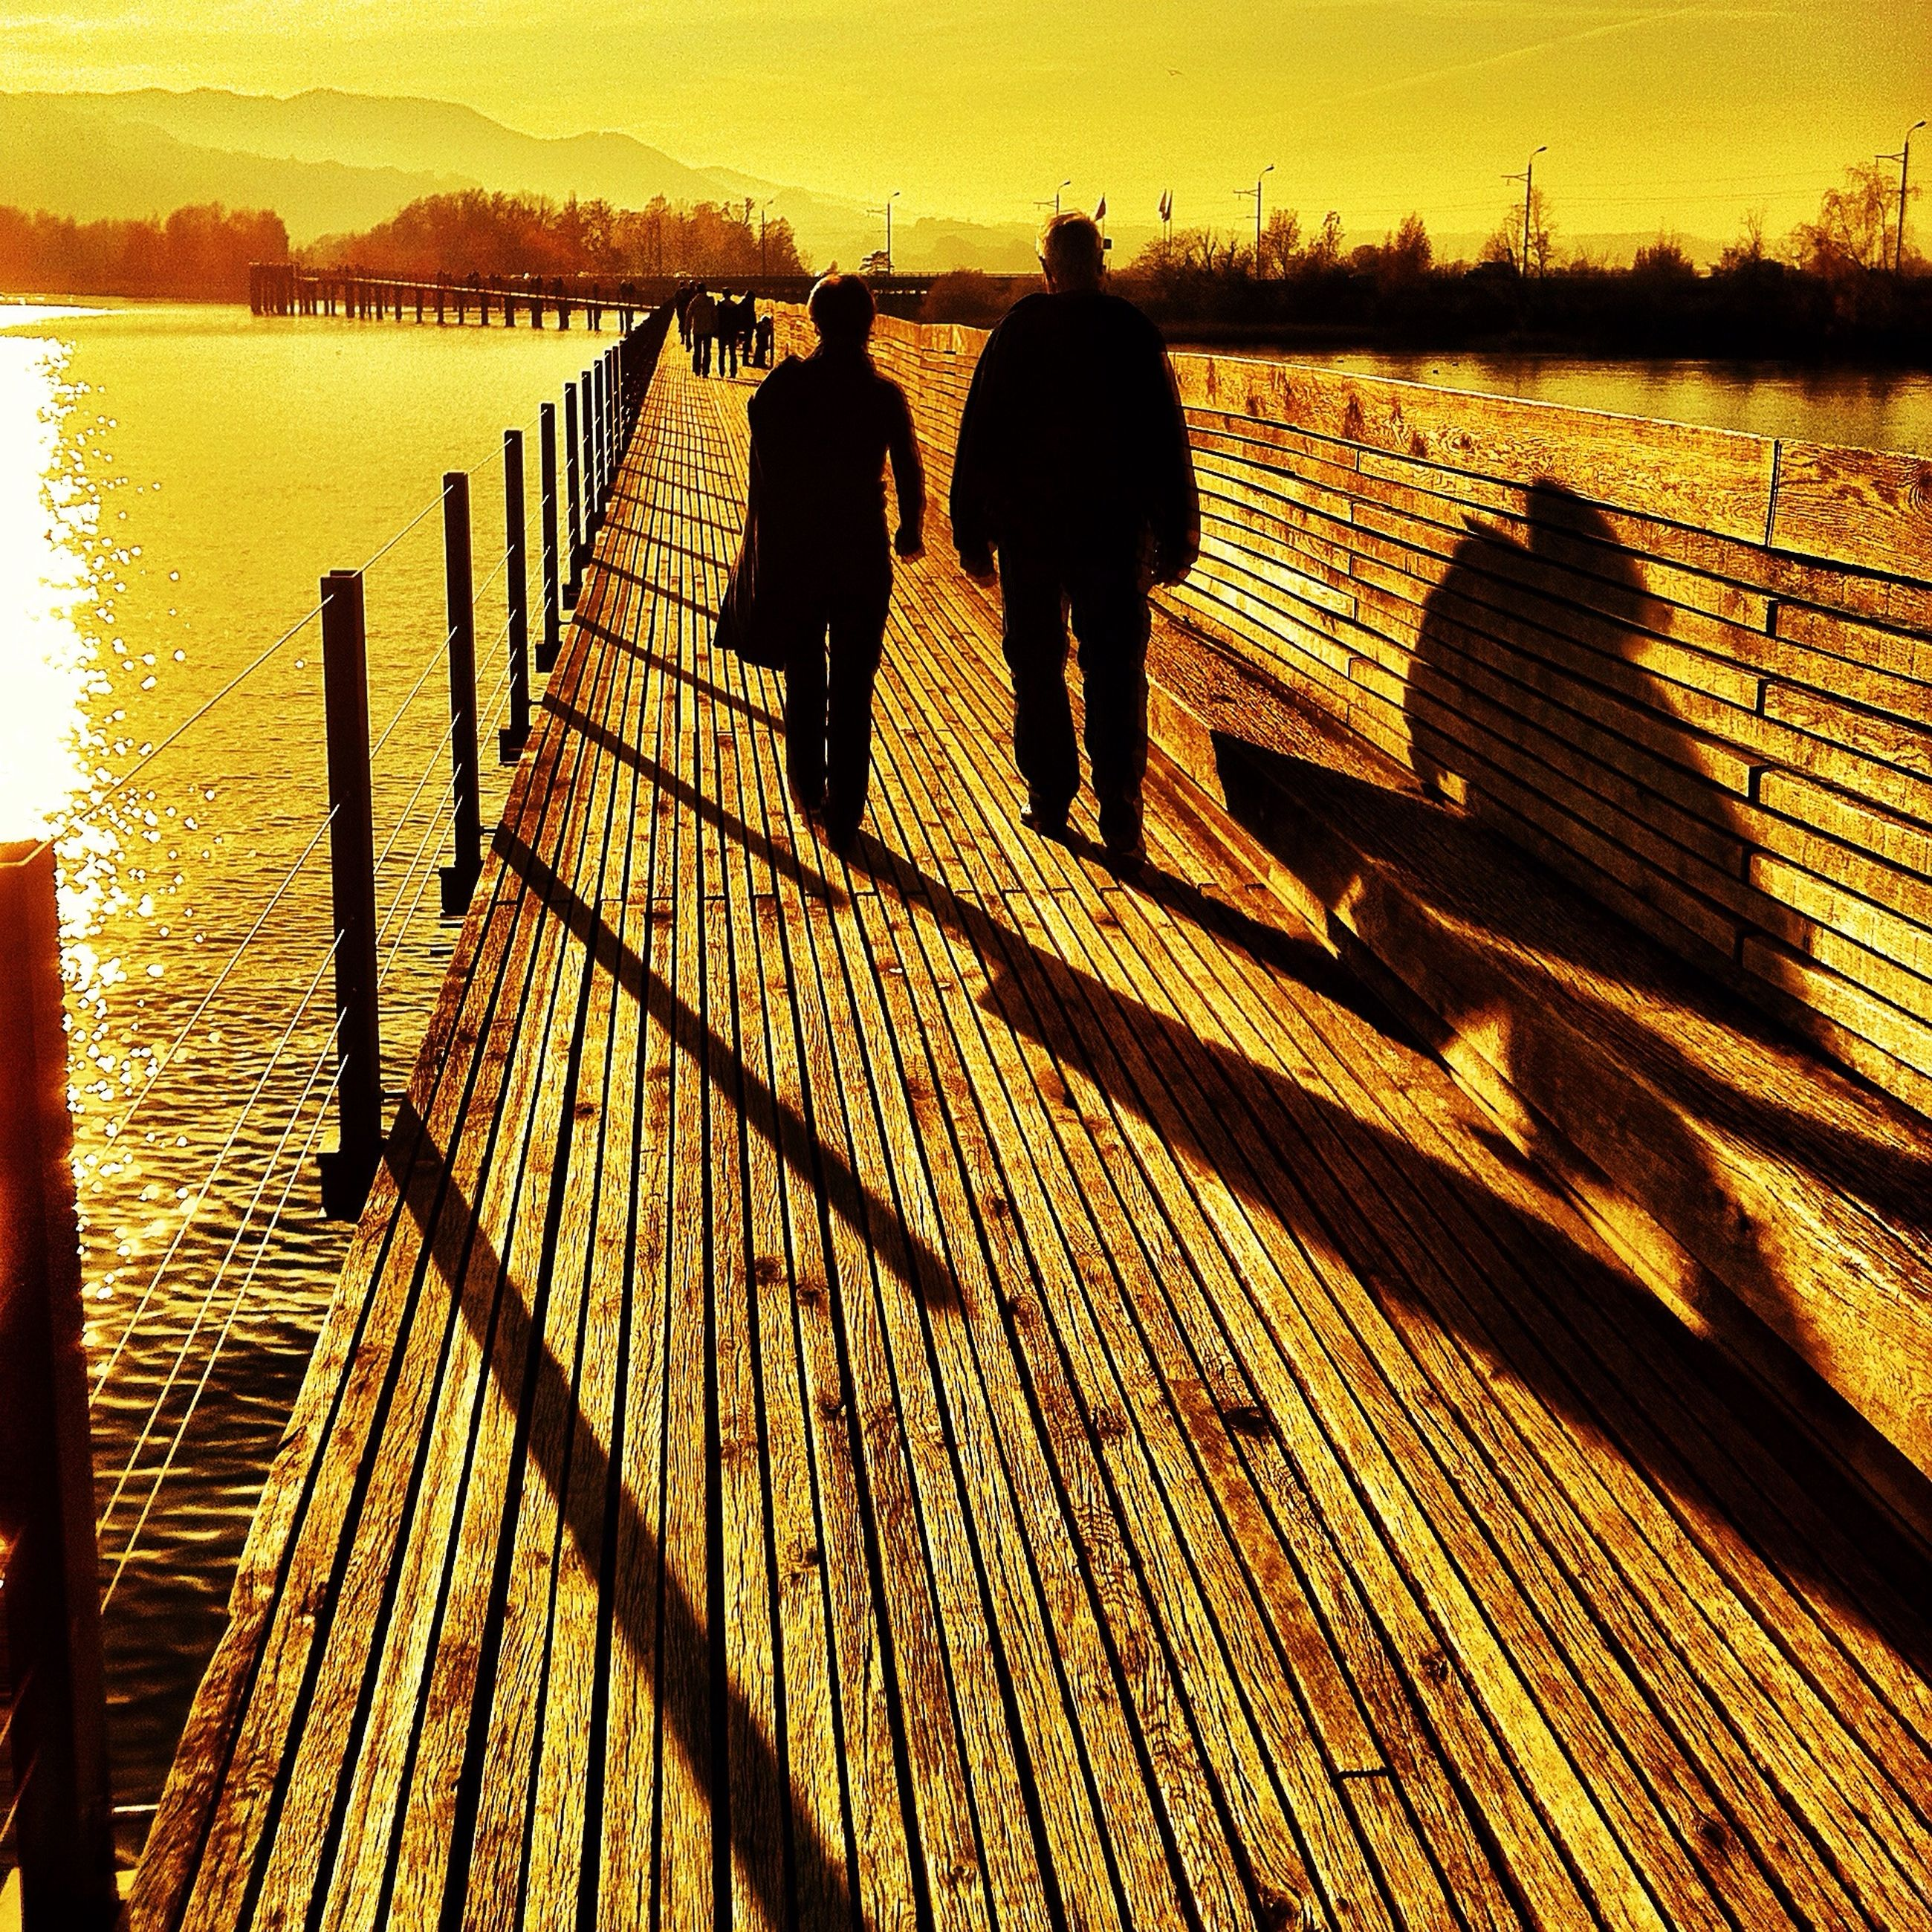 sunset, silhouette, lifestyles, men, water, railing, leisure activity, walking, standing, full length, rear view, pier, person, tranquility, sea, sunlight, nature